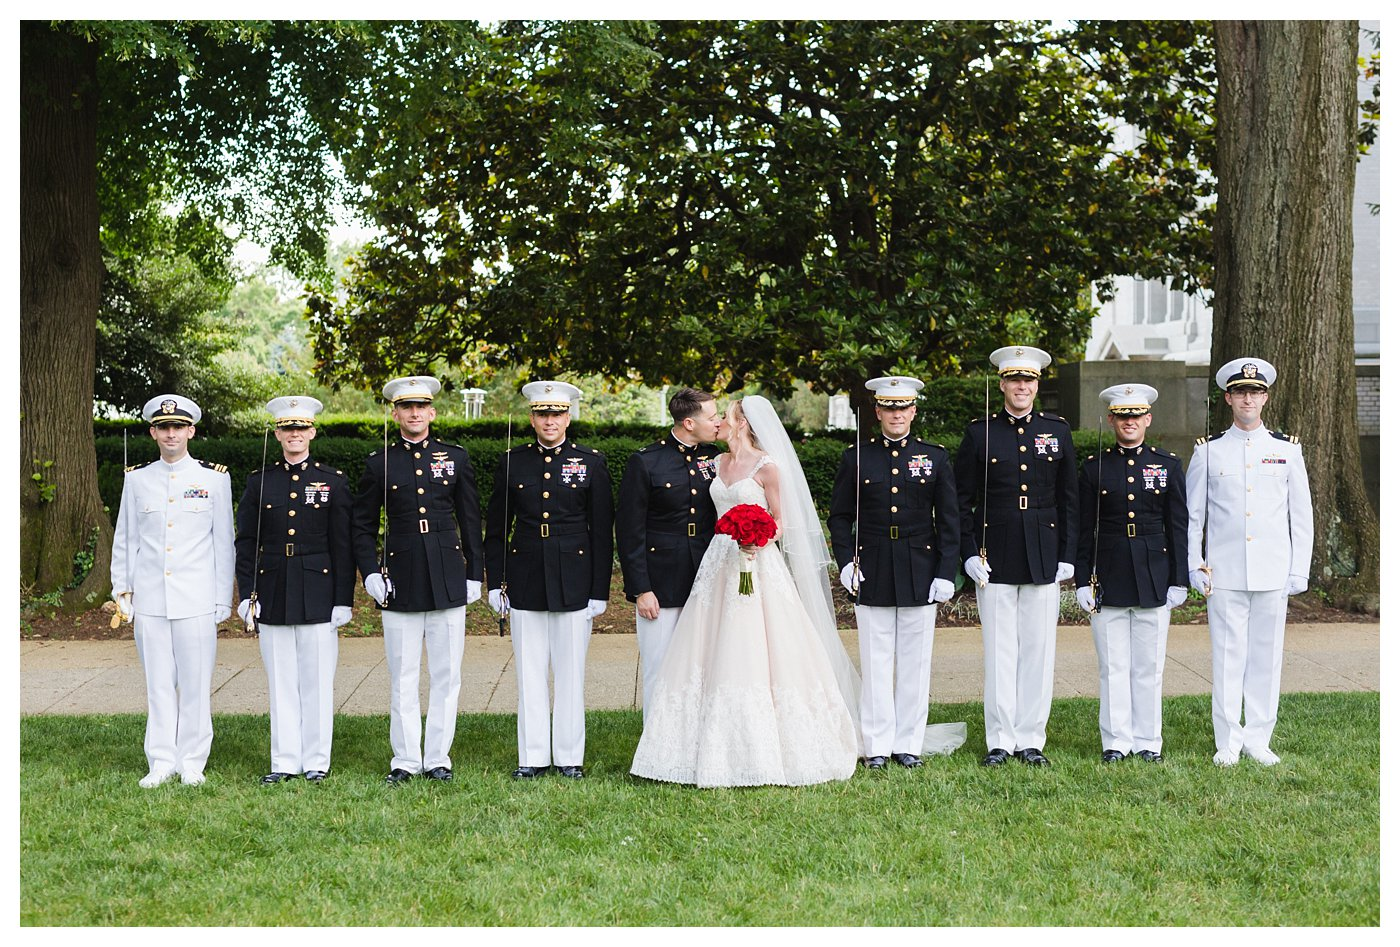 United States Naval Academy Wedding Photography by Amanda and Grady Photography